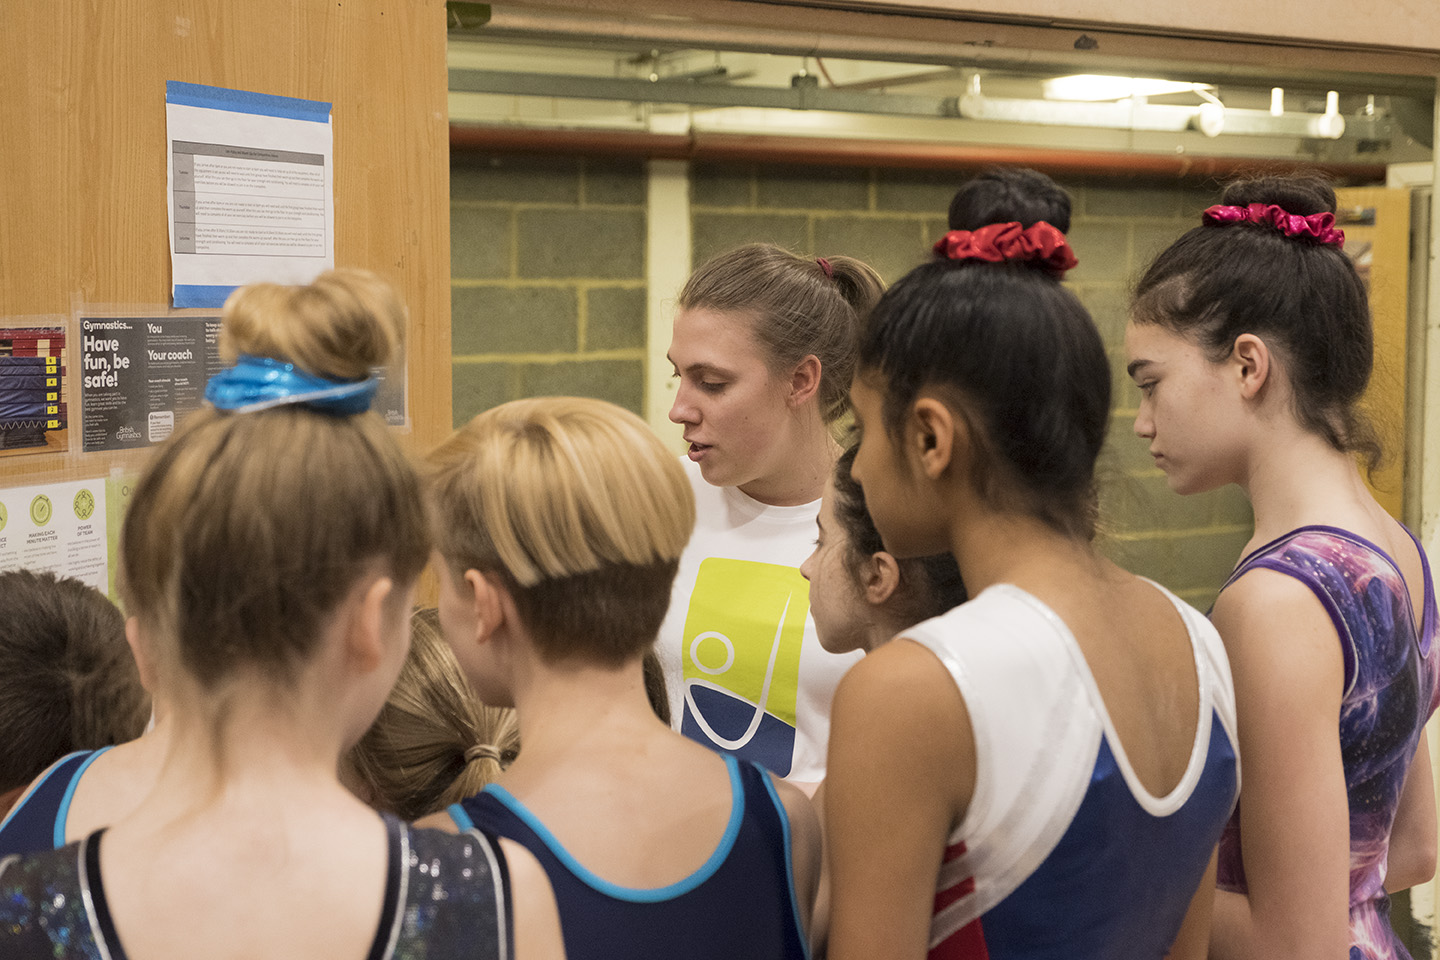 trampoline classes. Friendly and fun trampolining clubs near me. trampoline classes